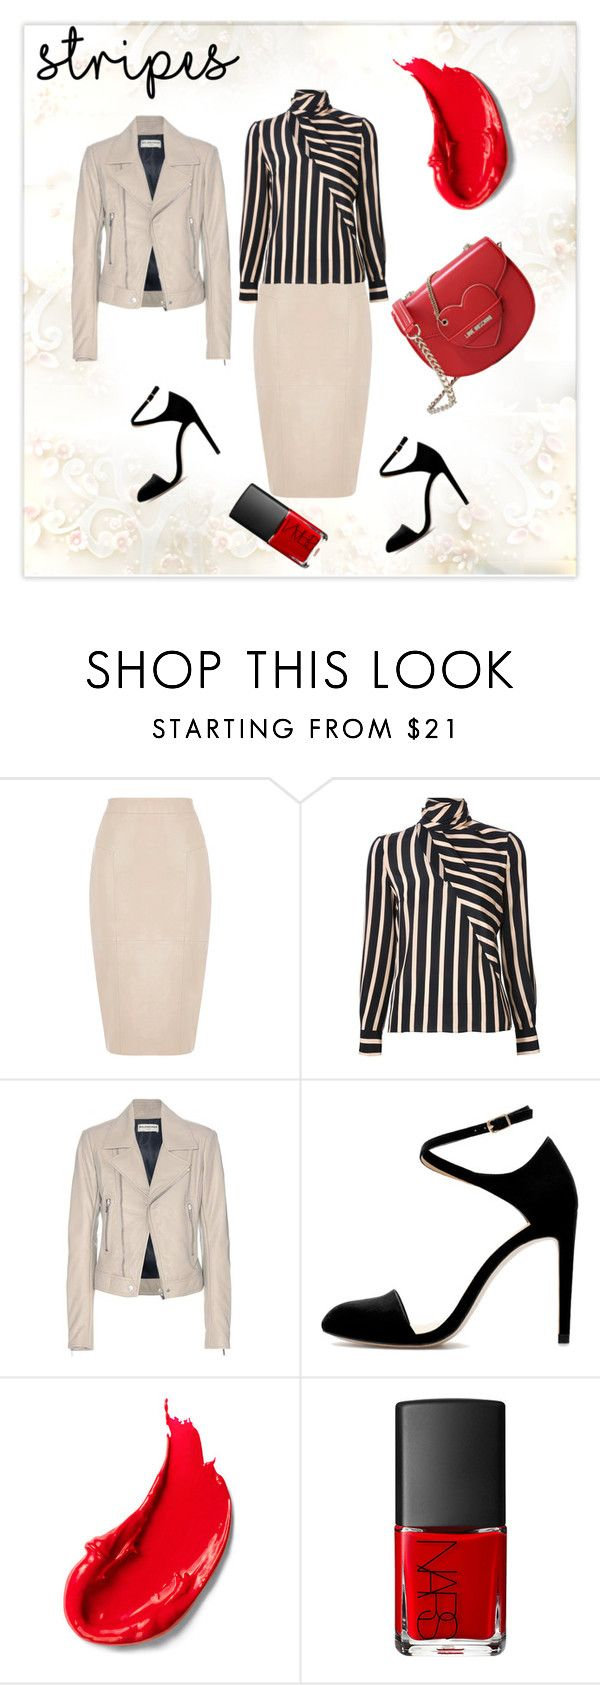 """one direction: striped shirts"" by louisaokonye ❤ liked on Polyvore featuring mode, Oasis, Emanuel Ungaro, Balenciaga, Estée Lauder, NARS Cosmetics, Love Moschino en stripes"